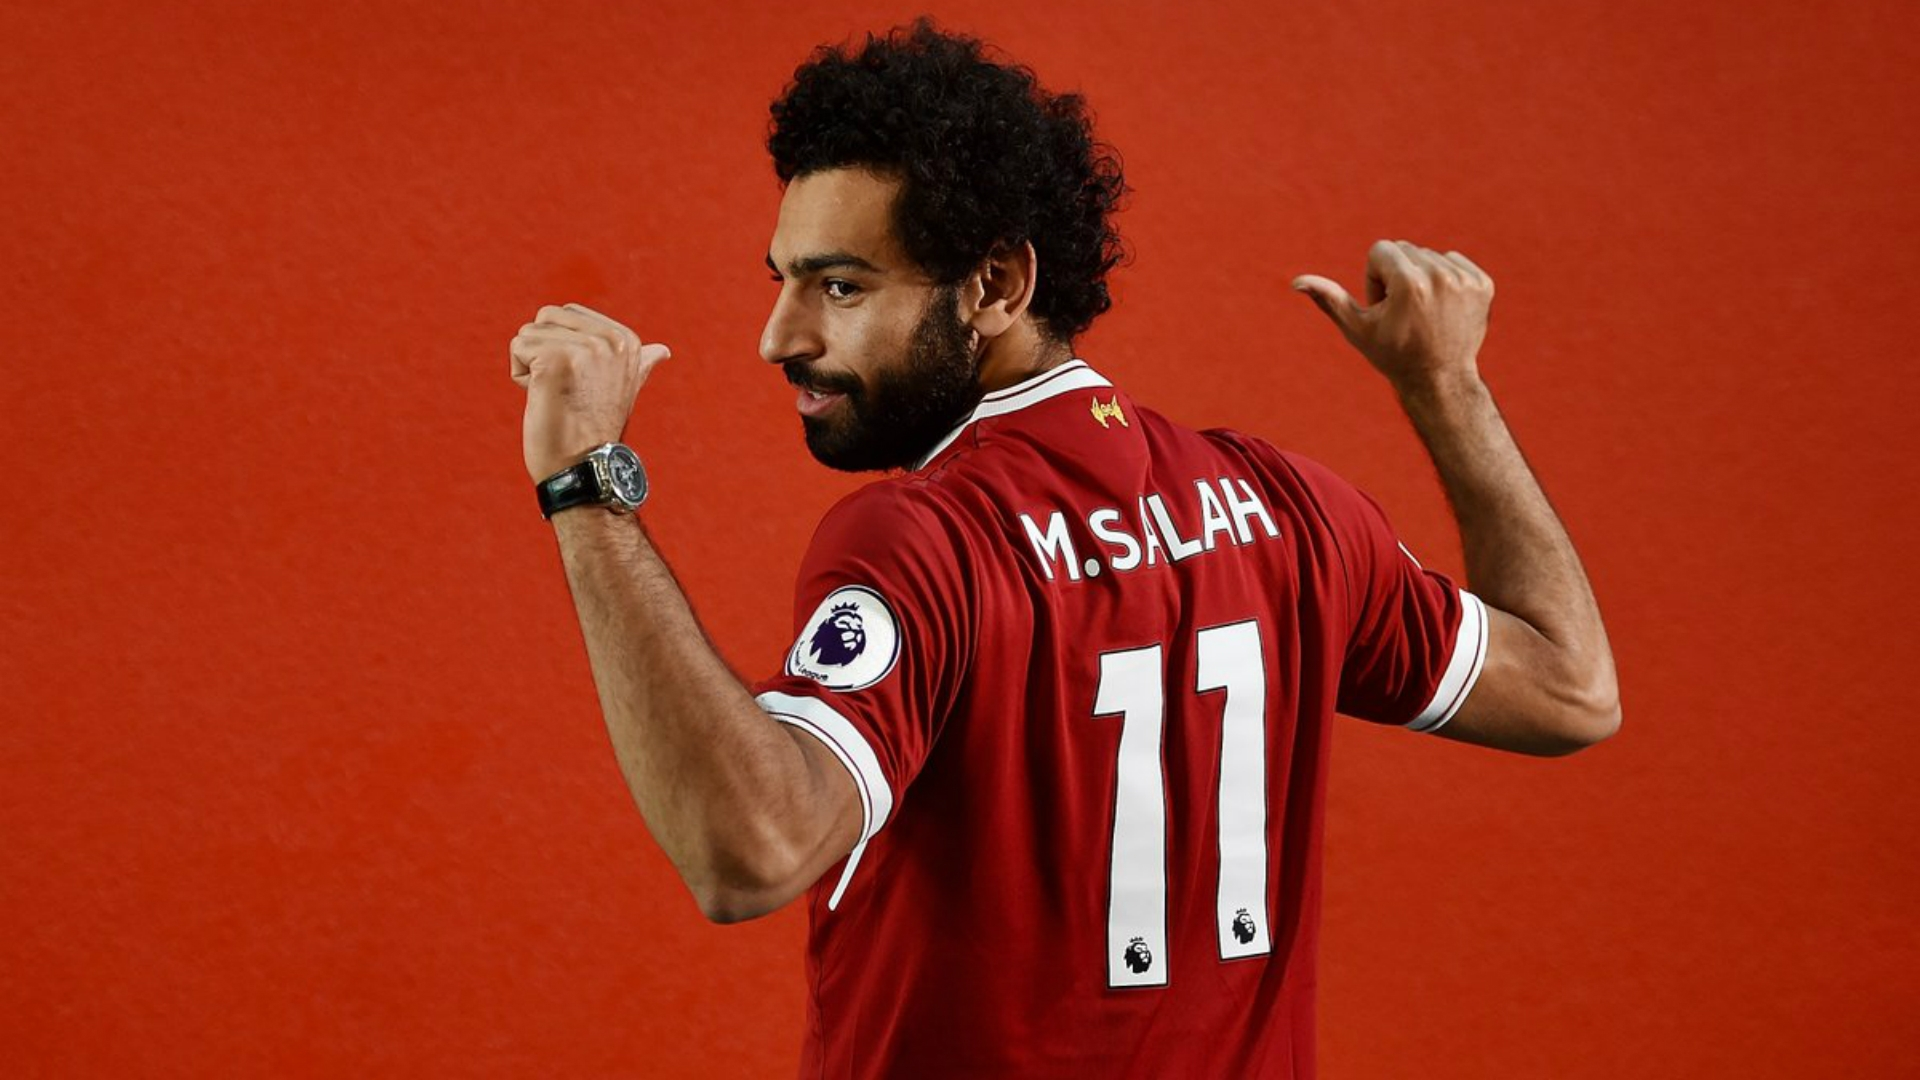 Salah is making a return to the Premier League after previously having been a member of Chelsea's squad.